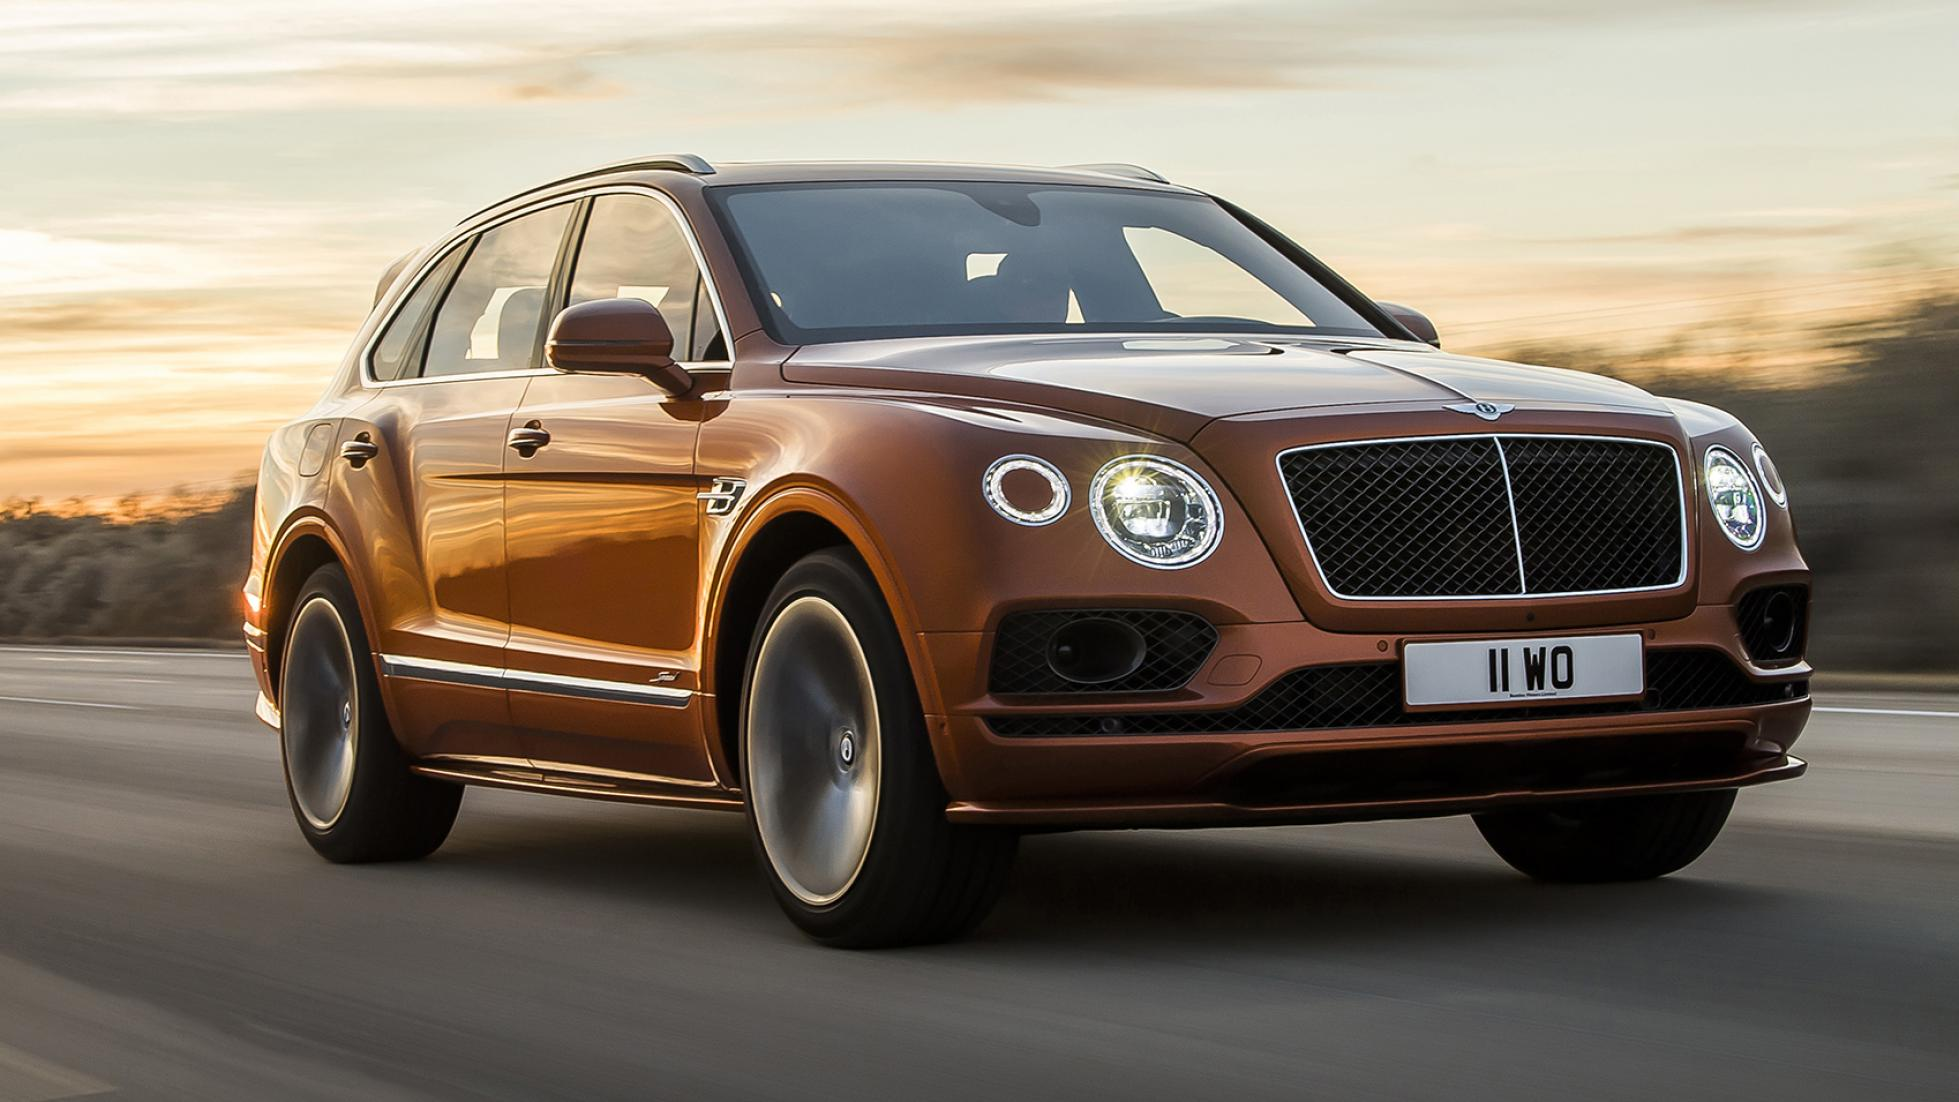 The new Bentley Bentayga Speed has usurped the Lamborghini Urus to become the fastest production SUV -